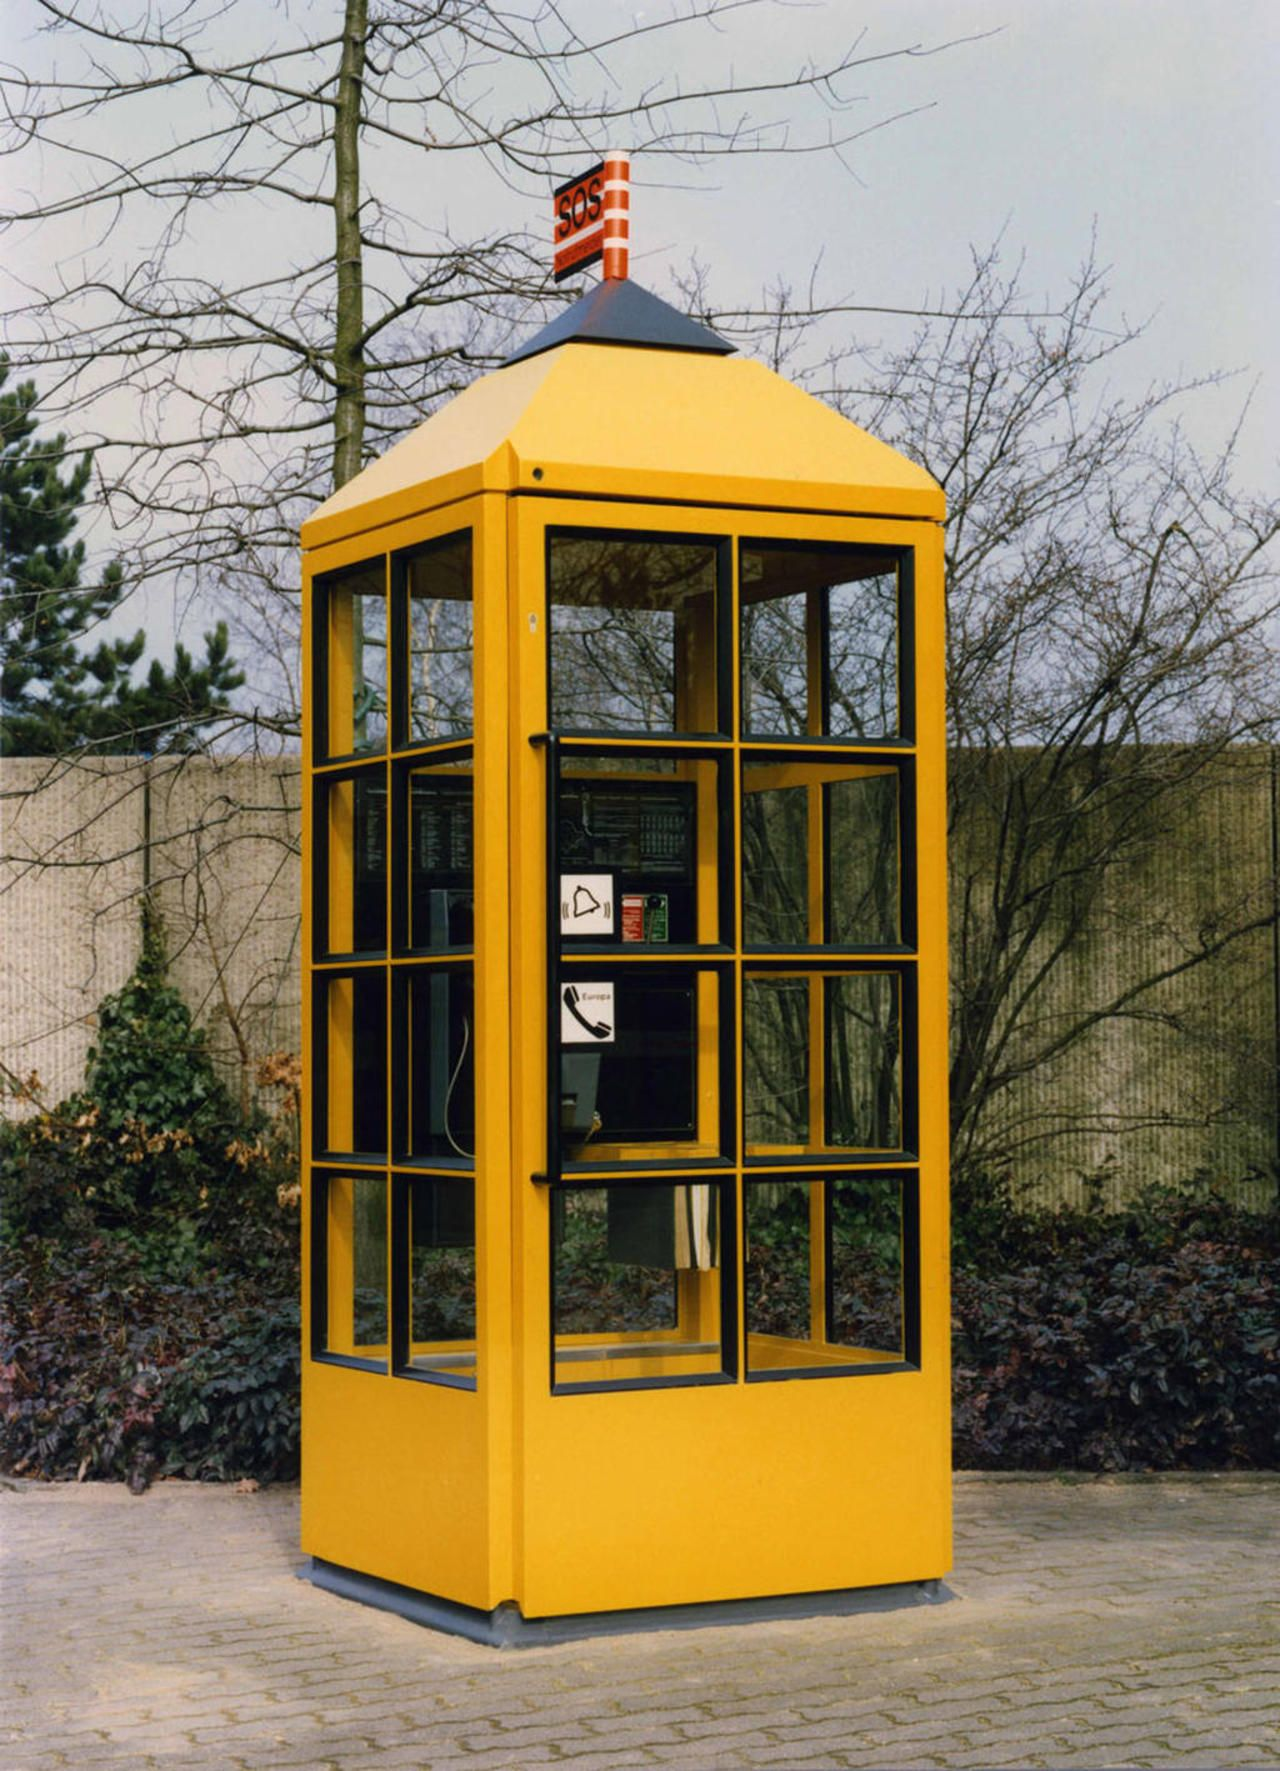 Telephone Booth 1986 Telephone booth for German post